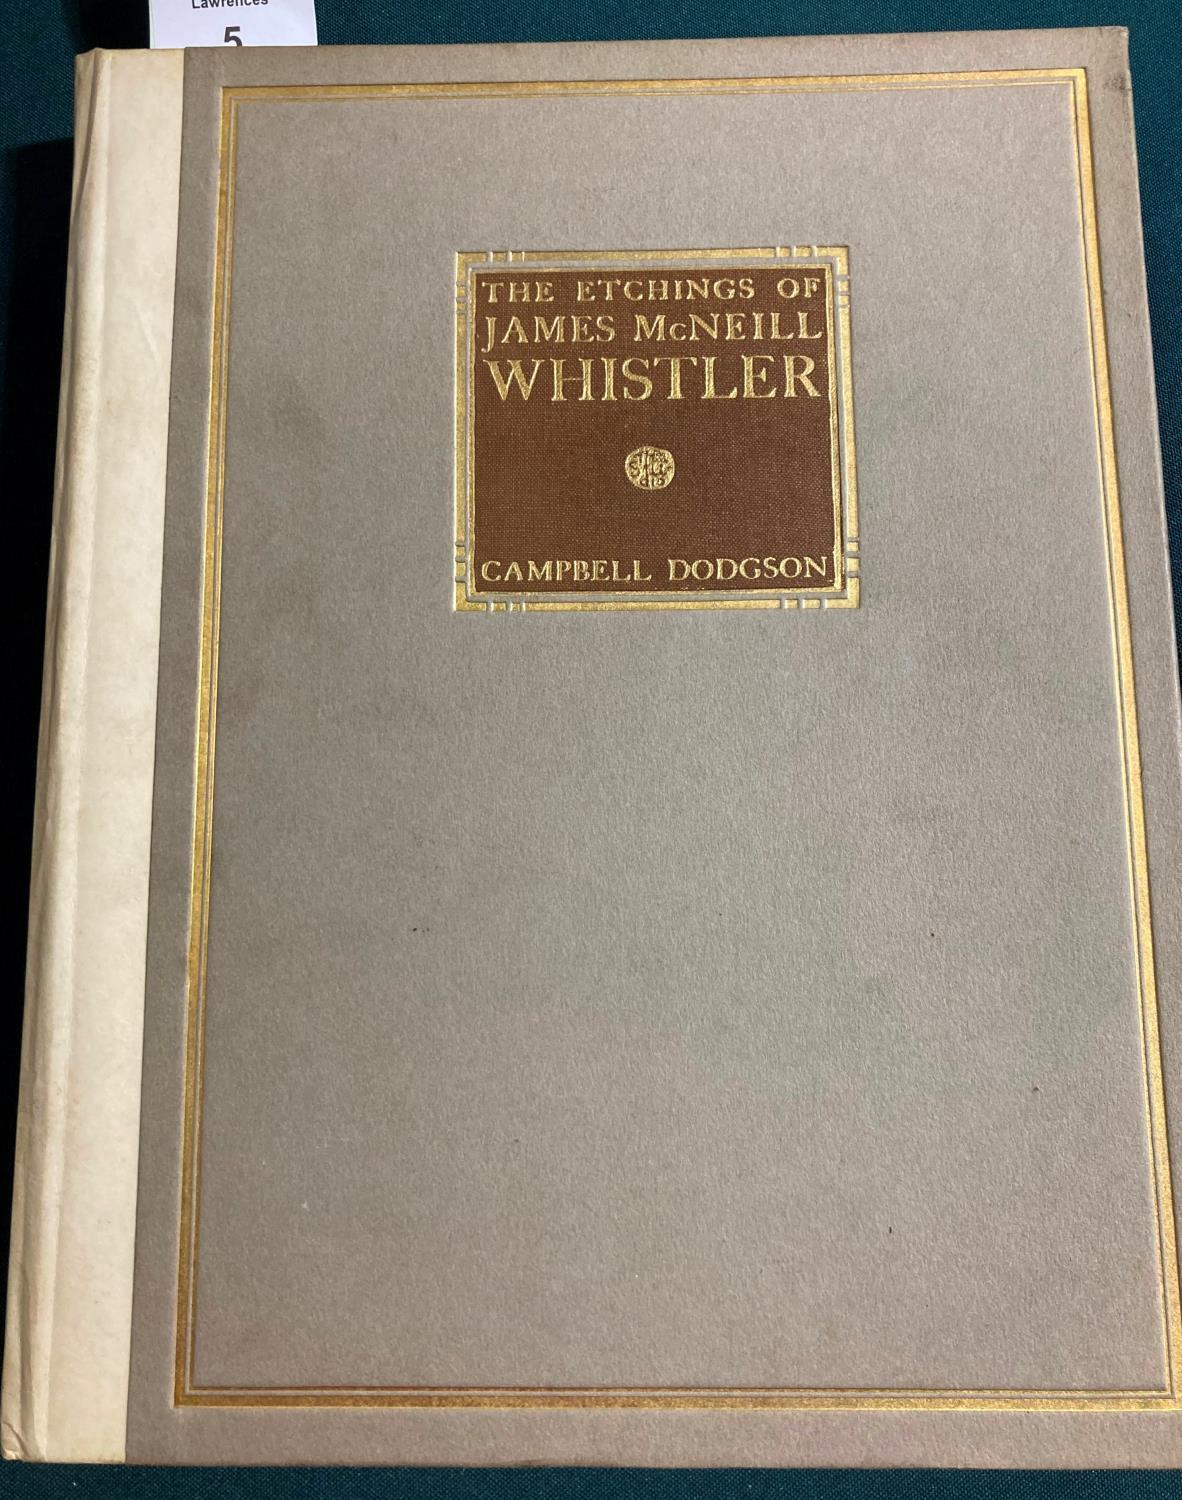 Dodgson, Cambell. The Etchings of James McNeill Whistler, plates, original vellum-backed boards,